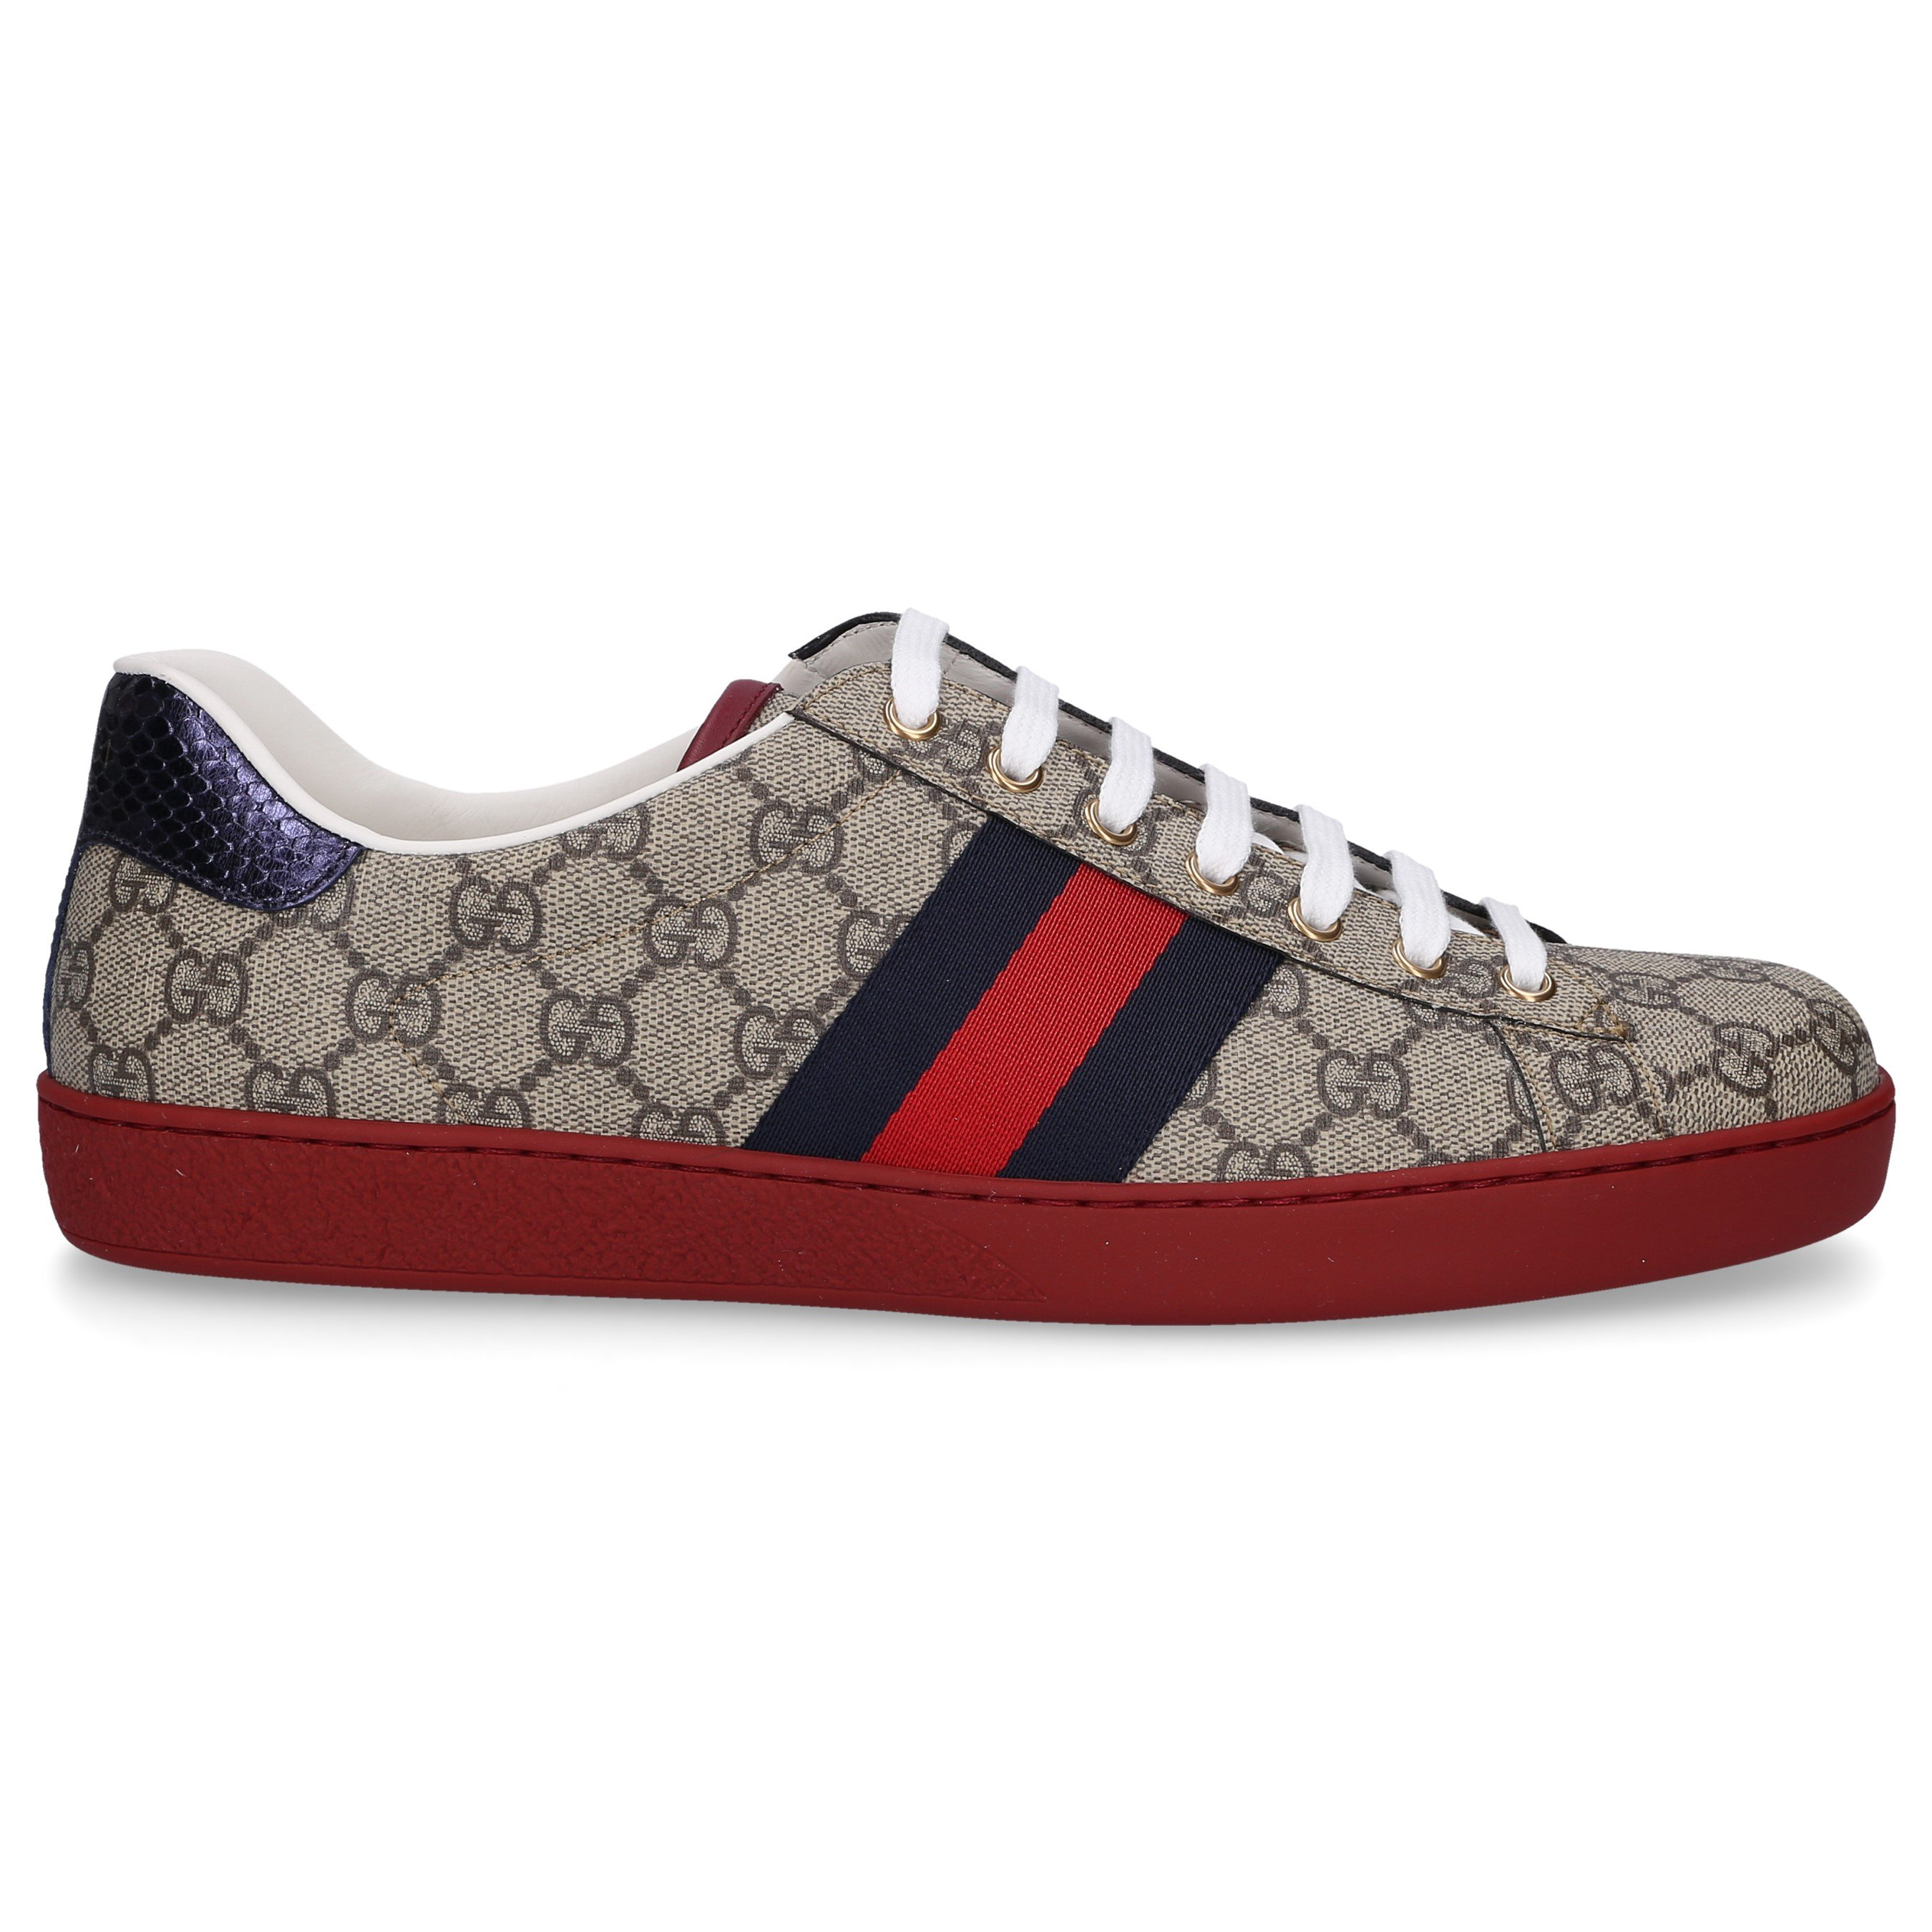 Gucci Sneakers Beige Ace